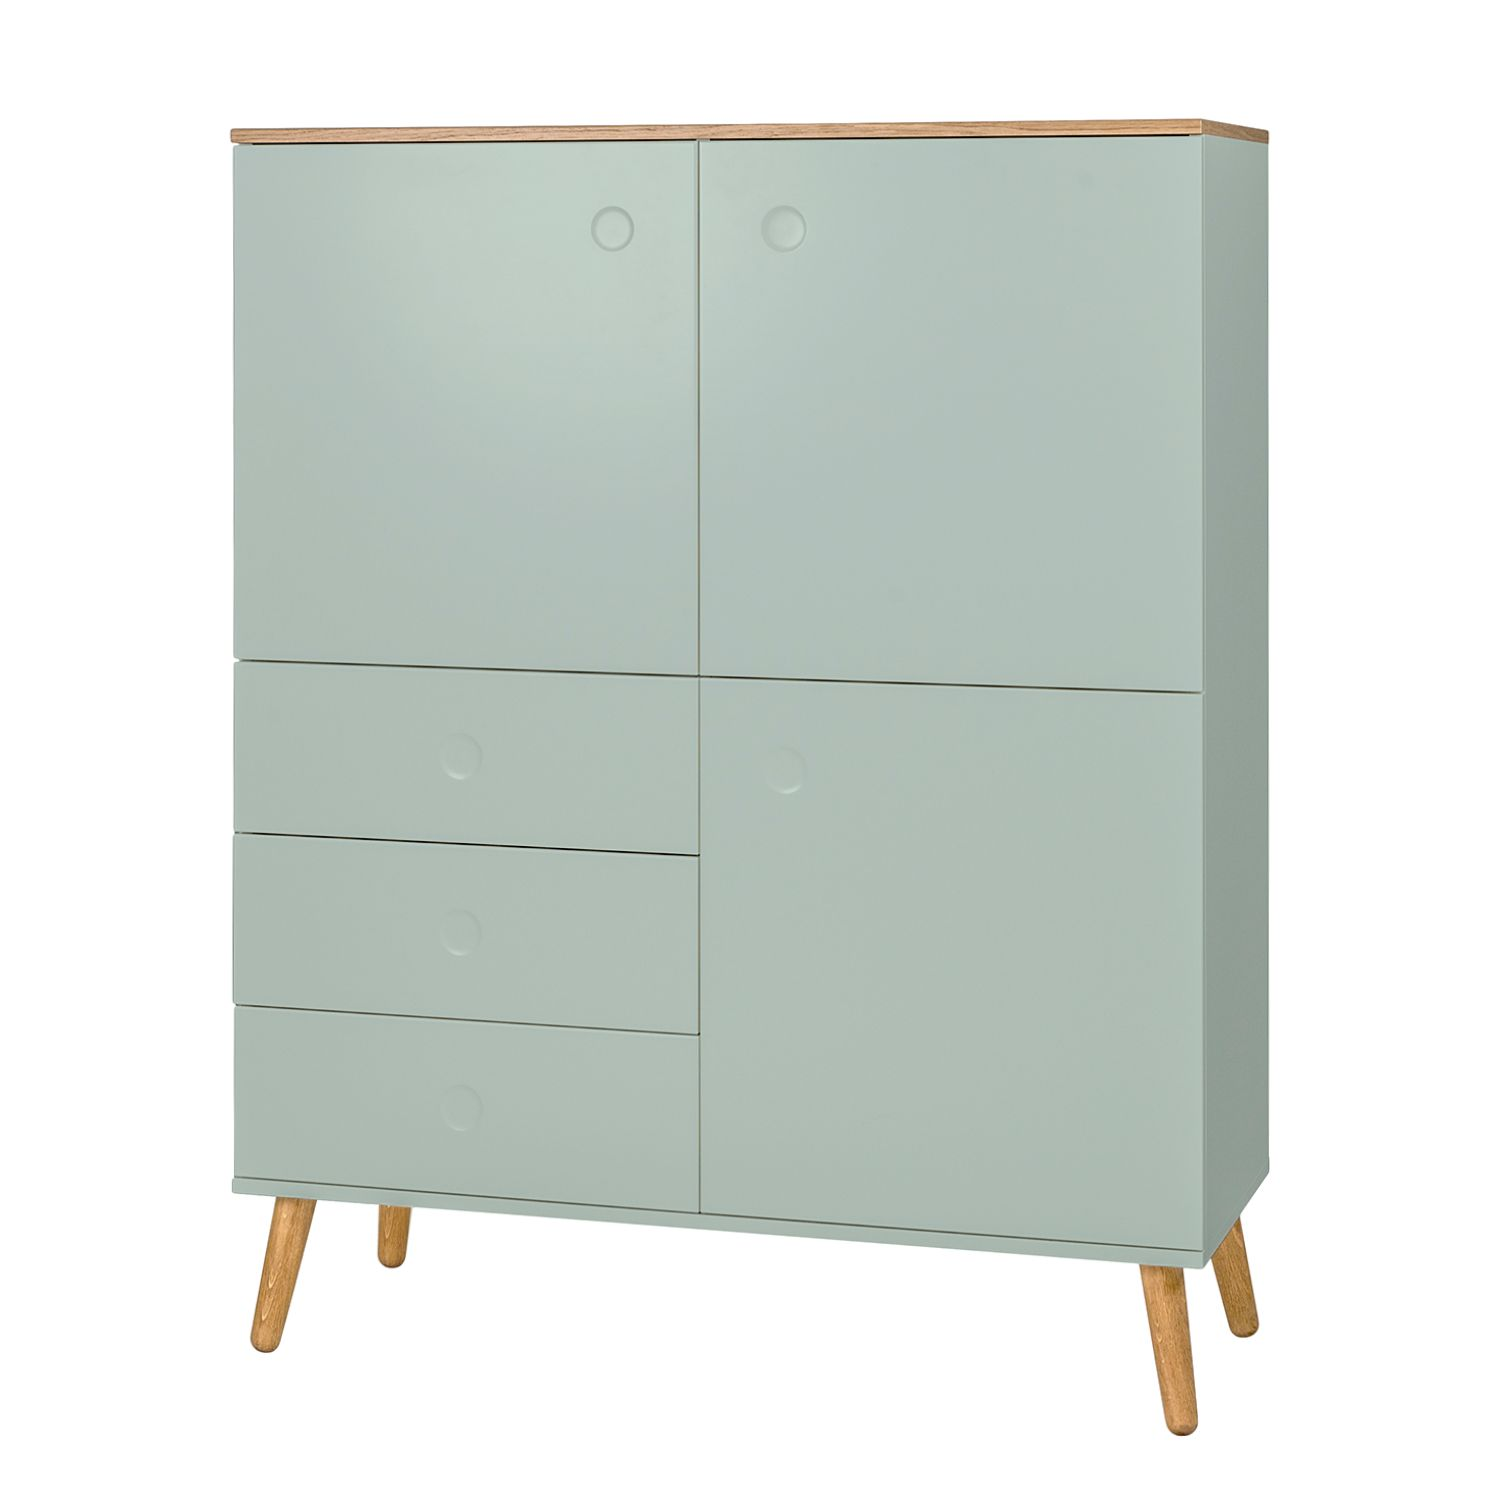 Highboard Dot - Eiche teilmassiv - Mint, Tenzo